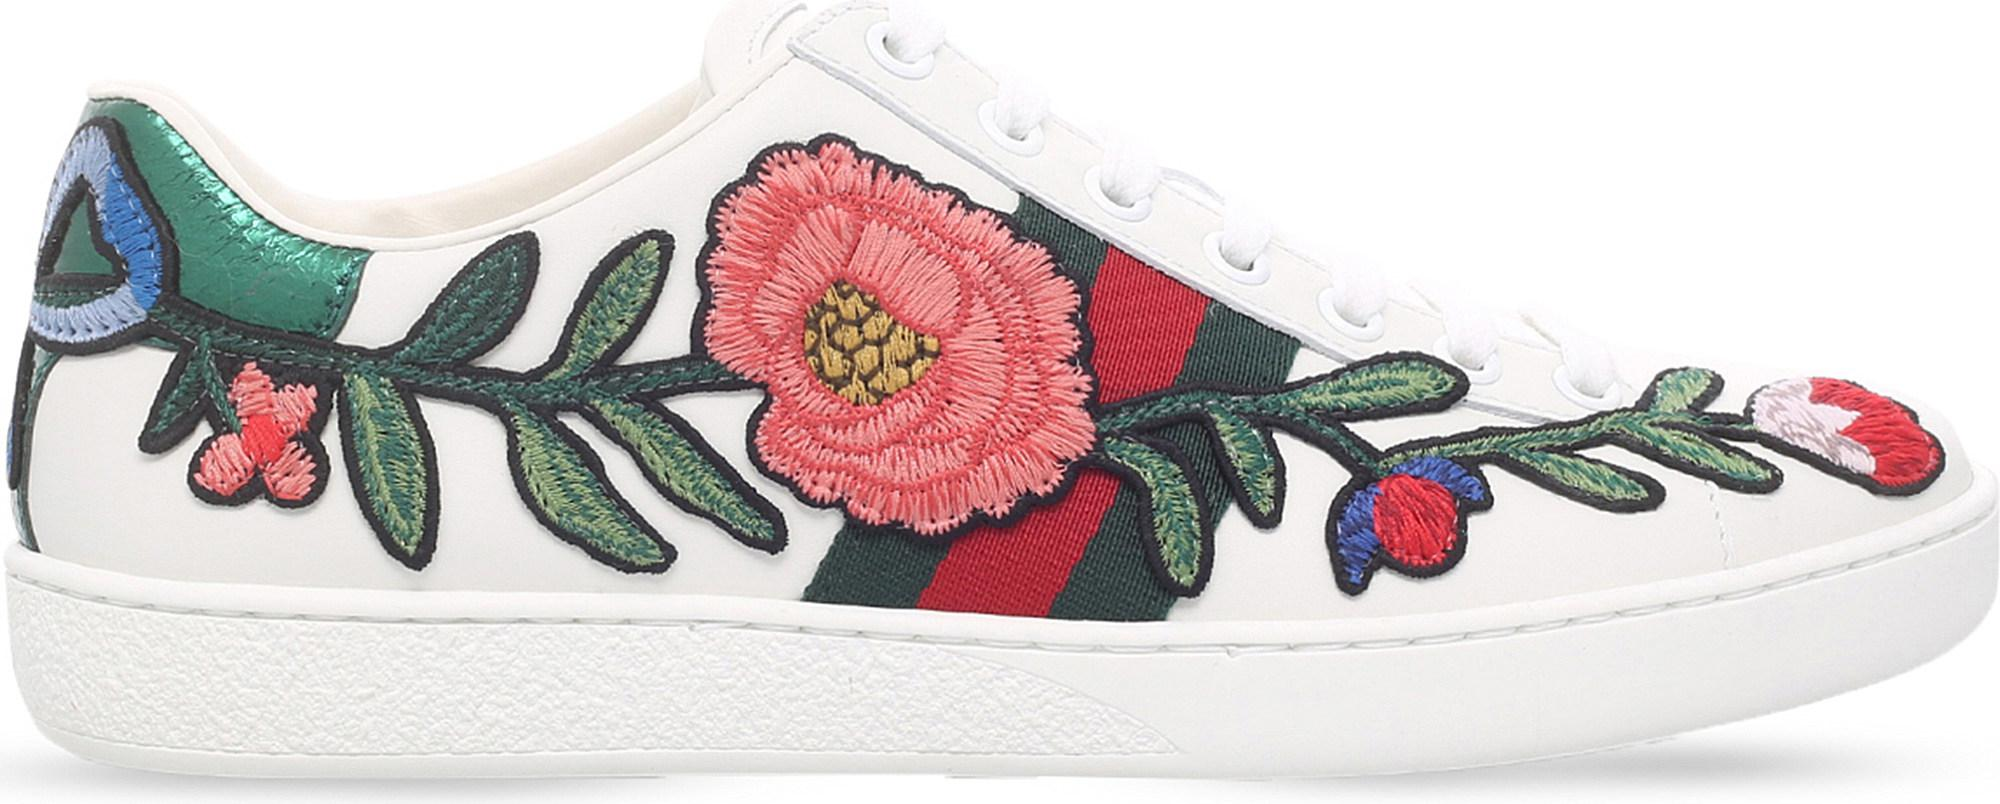 e3d824236c4 Lyst - Gucci New Ace Floral Embroidered Leather Trainers in Red